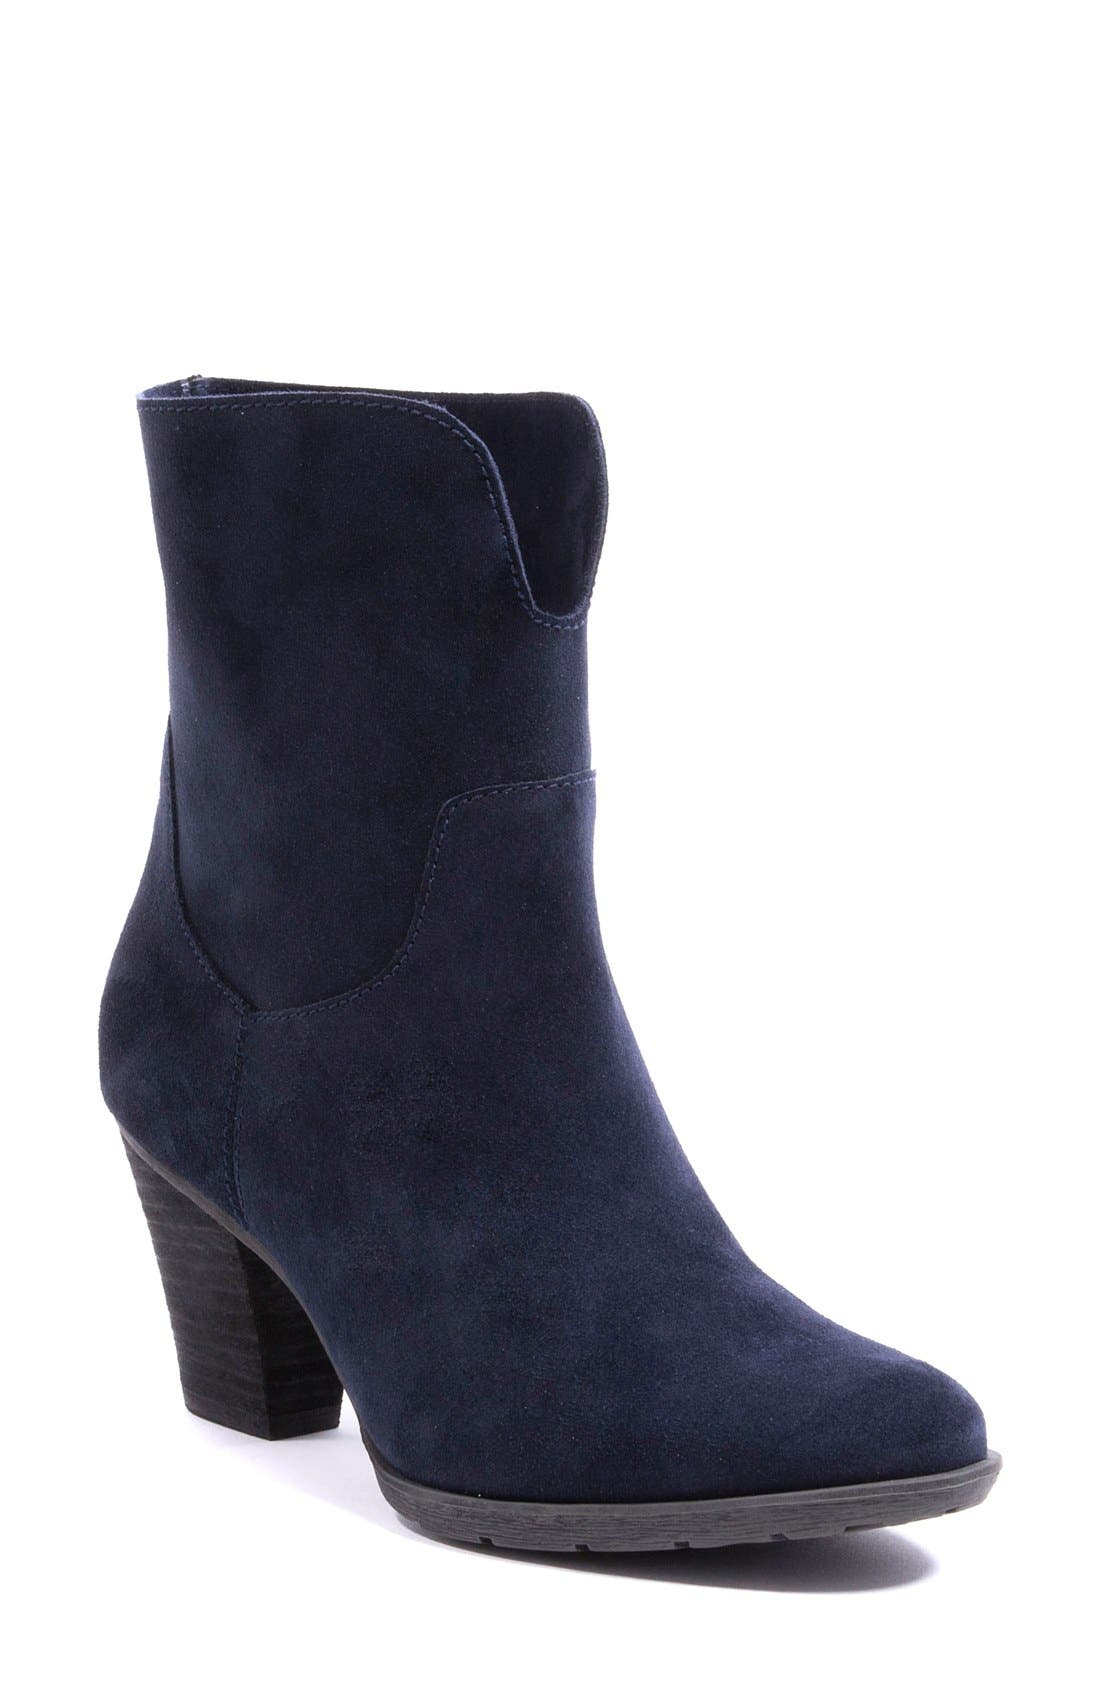 Alternate Image 1 Selected - Blondo Fay Waterproof Ankle Boot (Women)